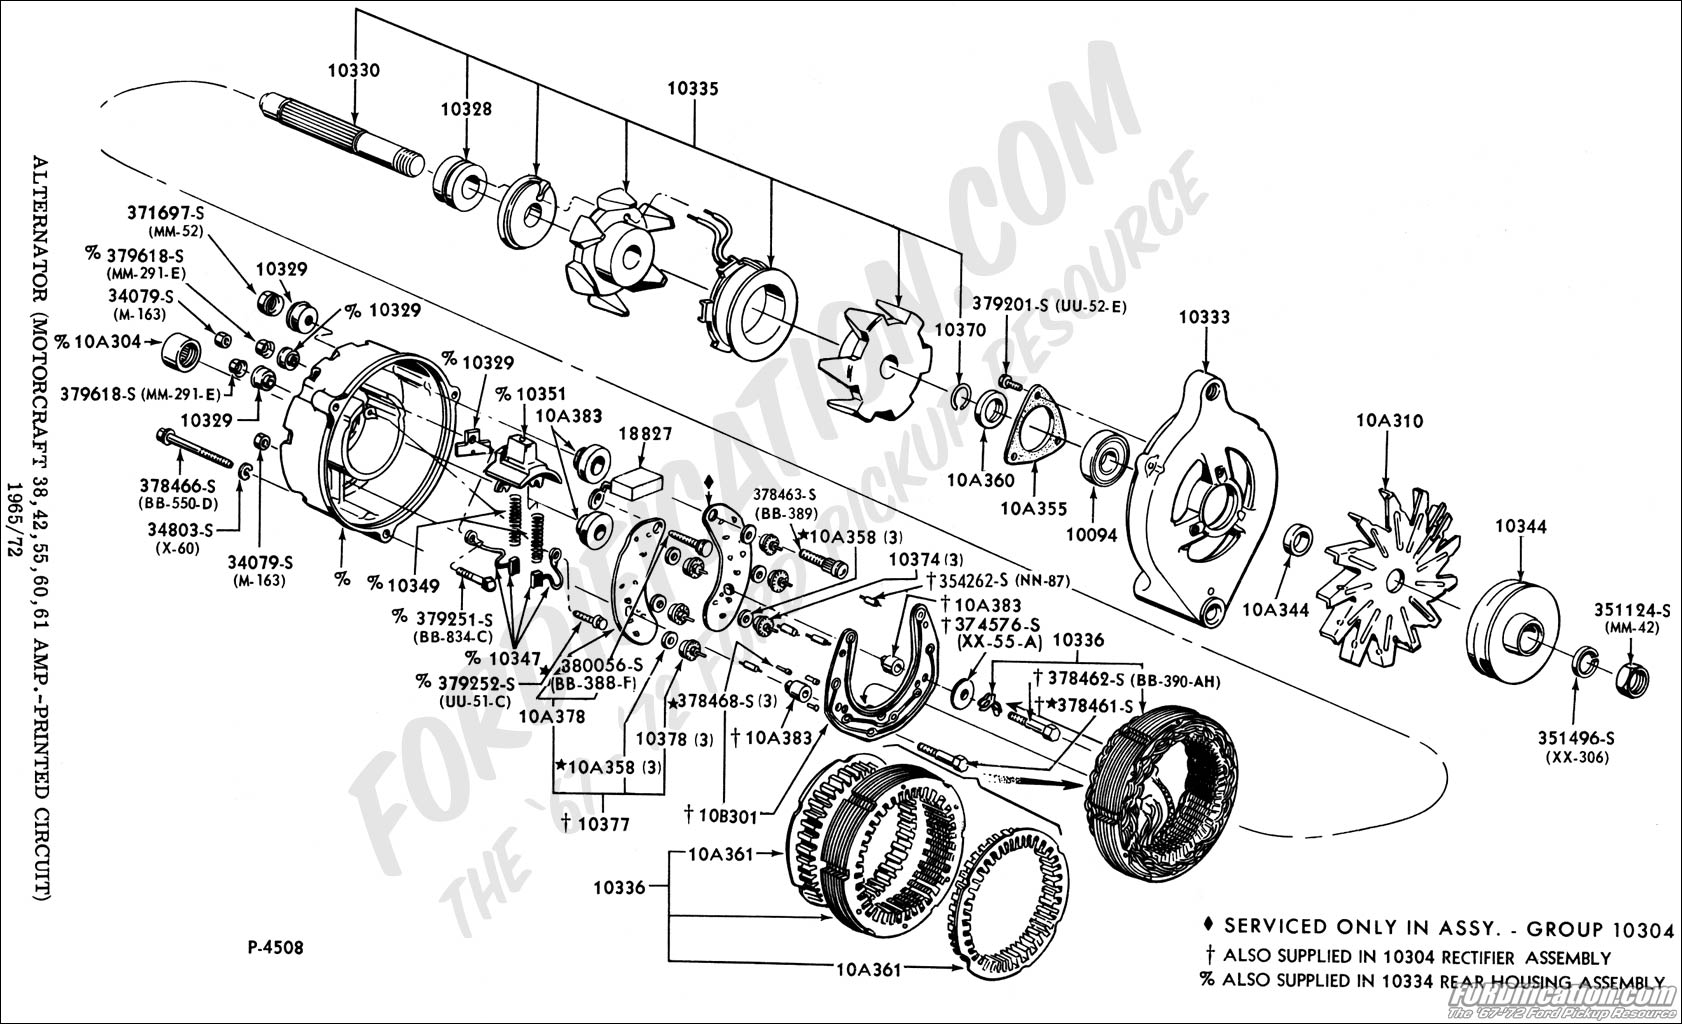 [WRG-5624] 76 Ford Bronco Alternator Wiring Diagram